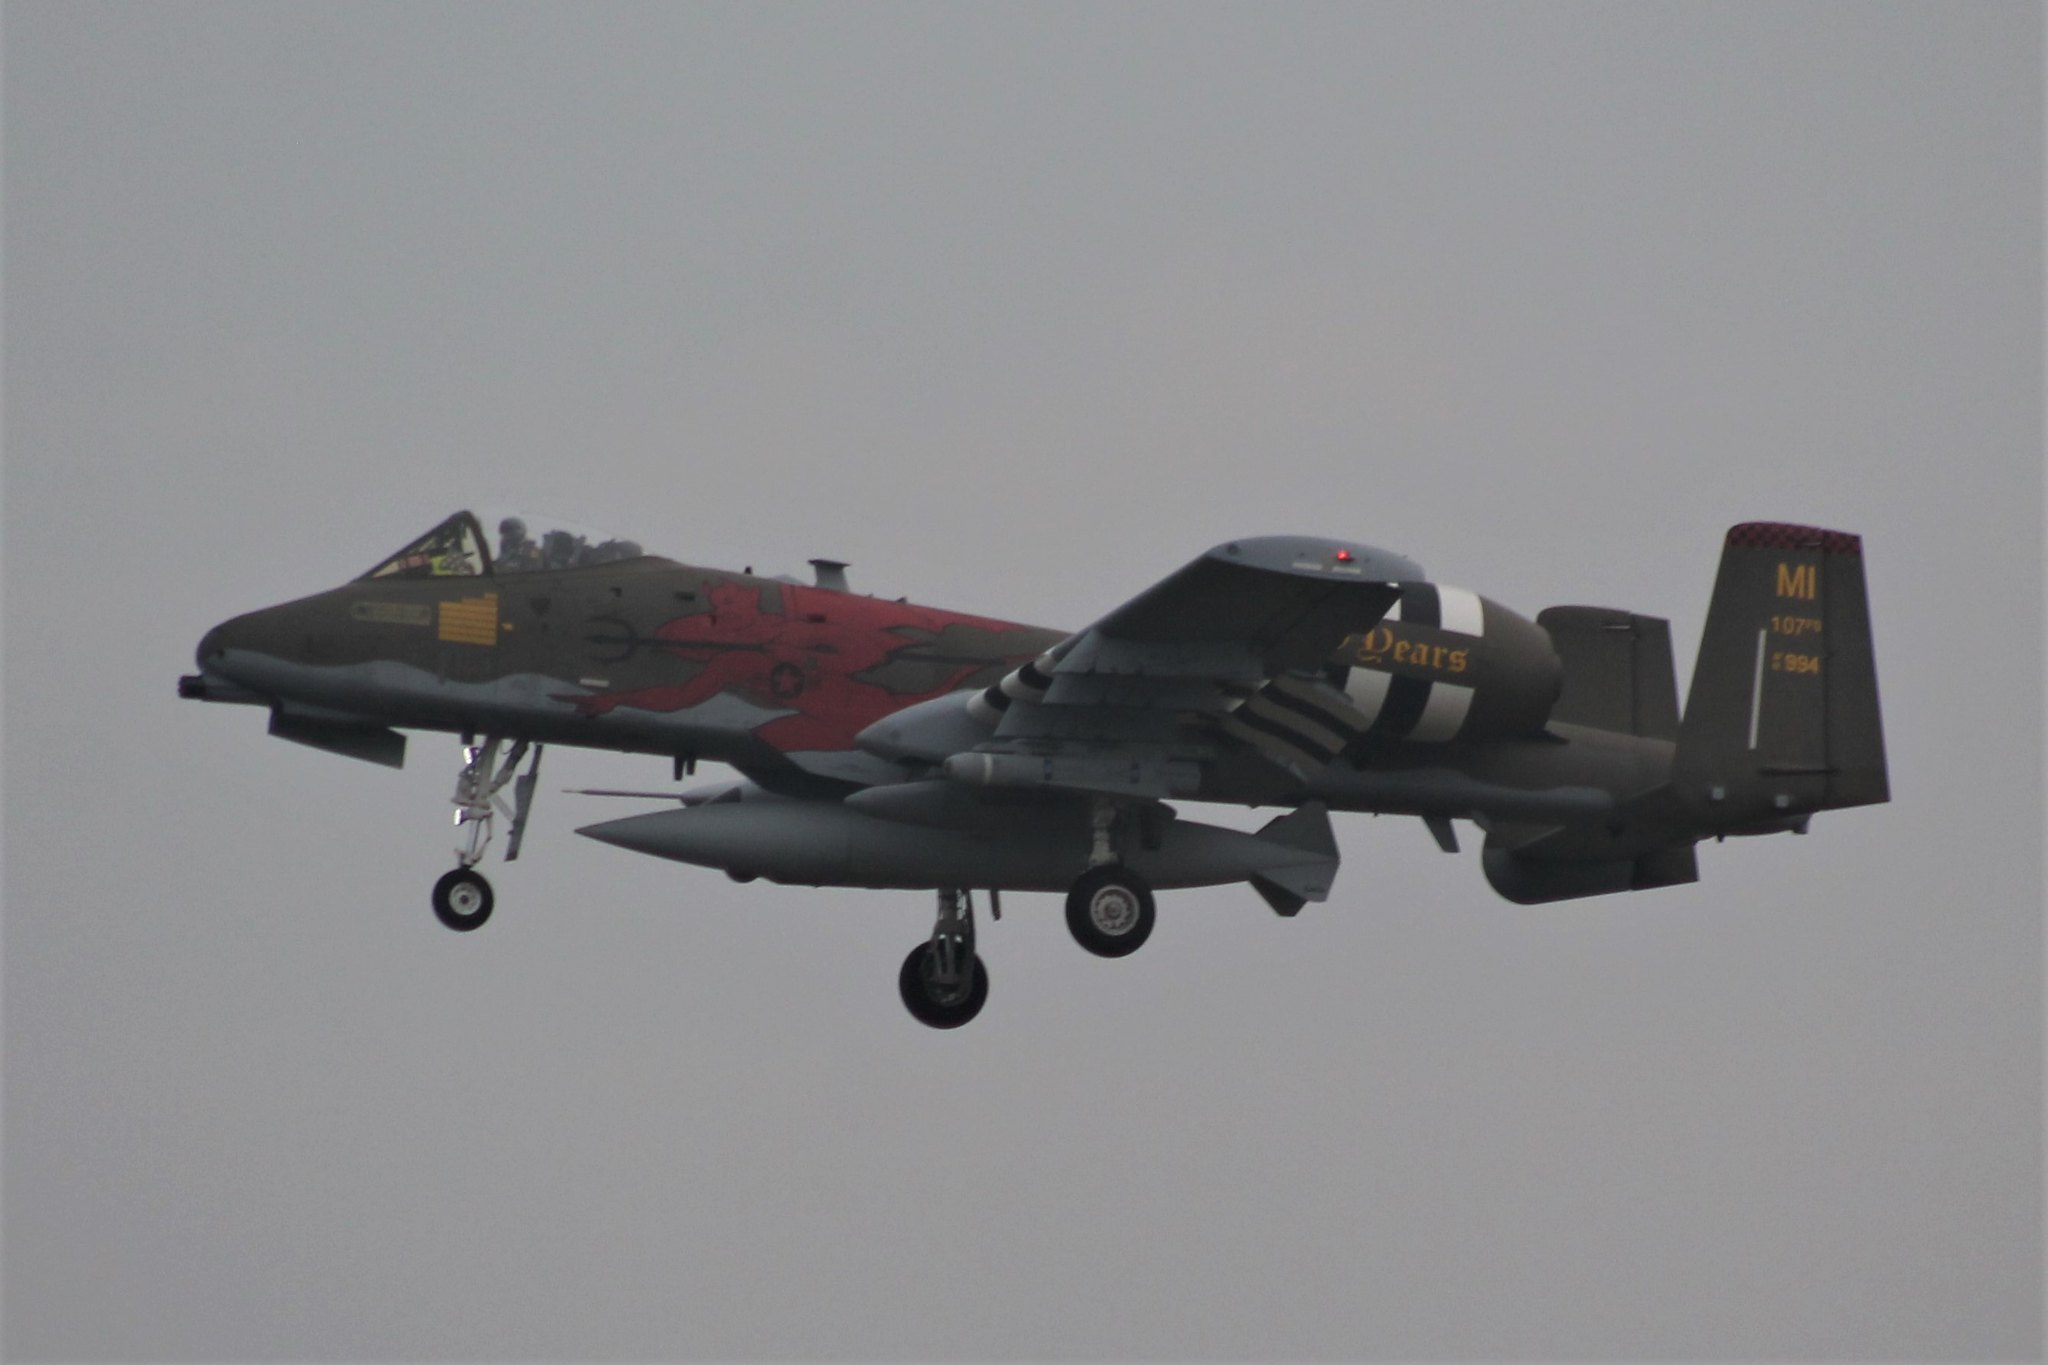 107th FS Red Devils, MI-ANG 100 Years - PPRuNe Forums